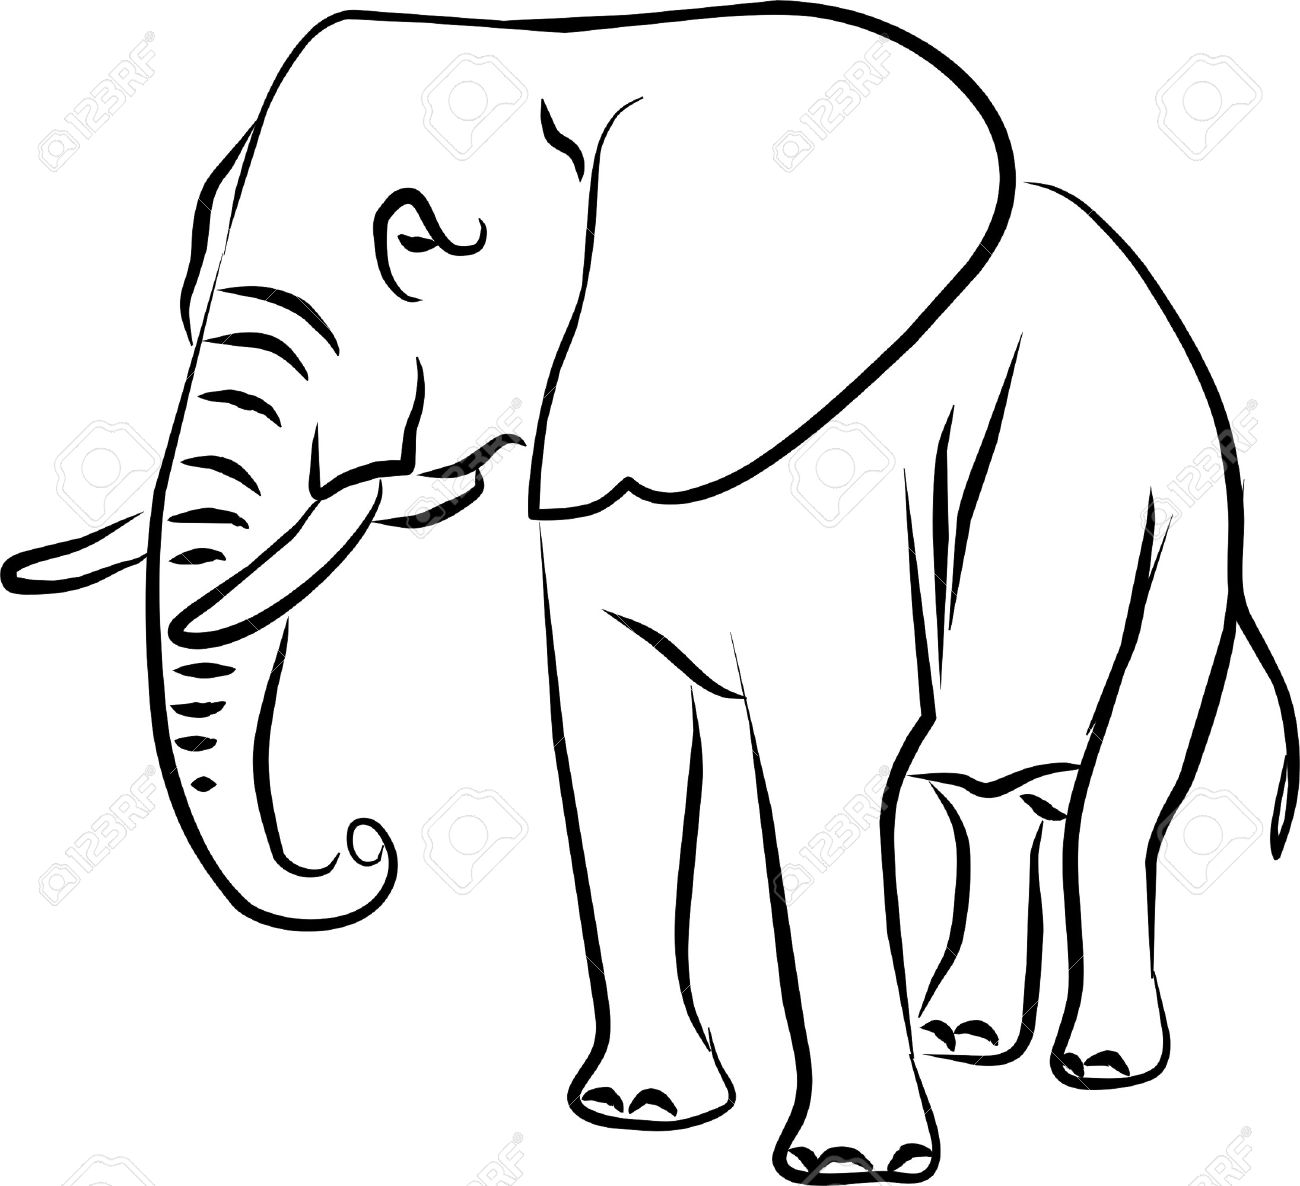 Elephant Images Drawing